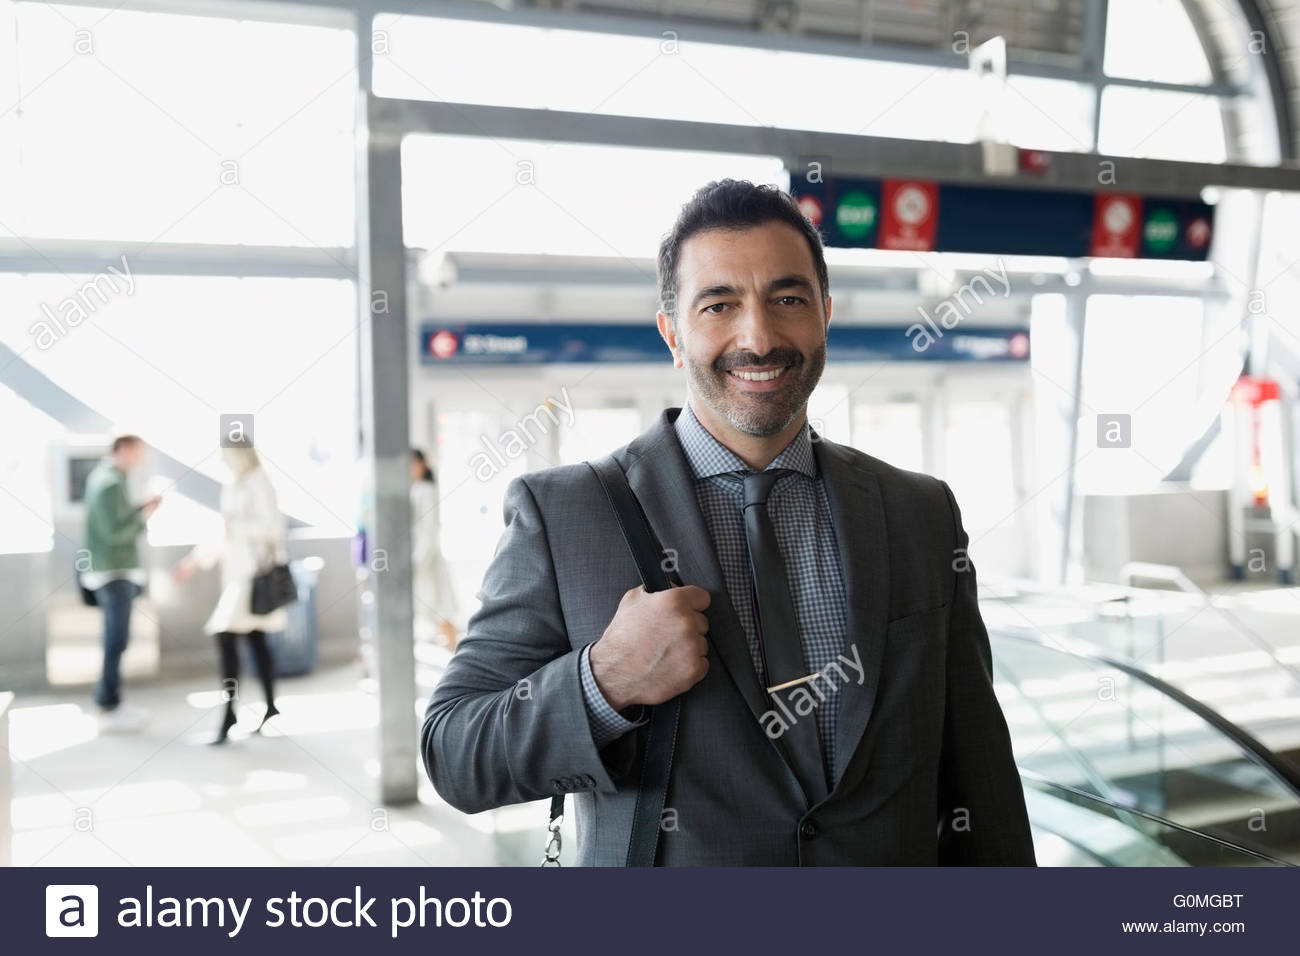 Portrait smiling businessman at train station - Stock Image